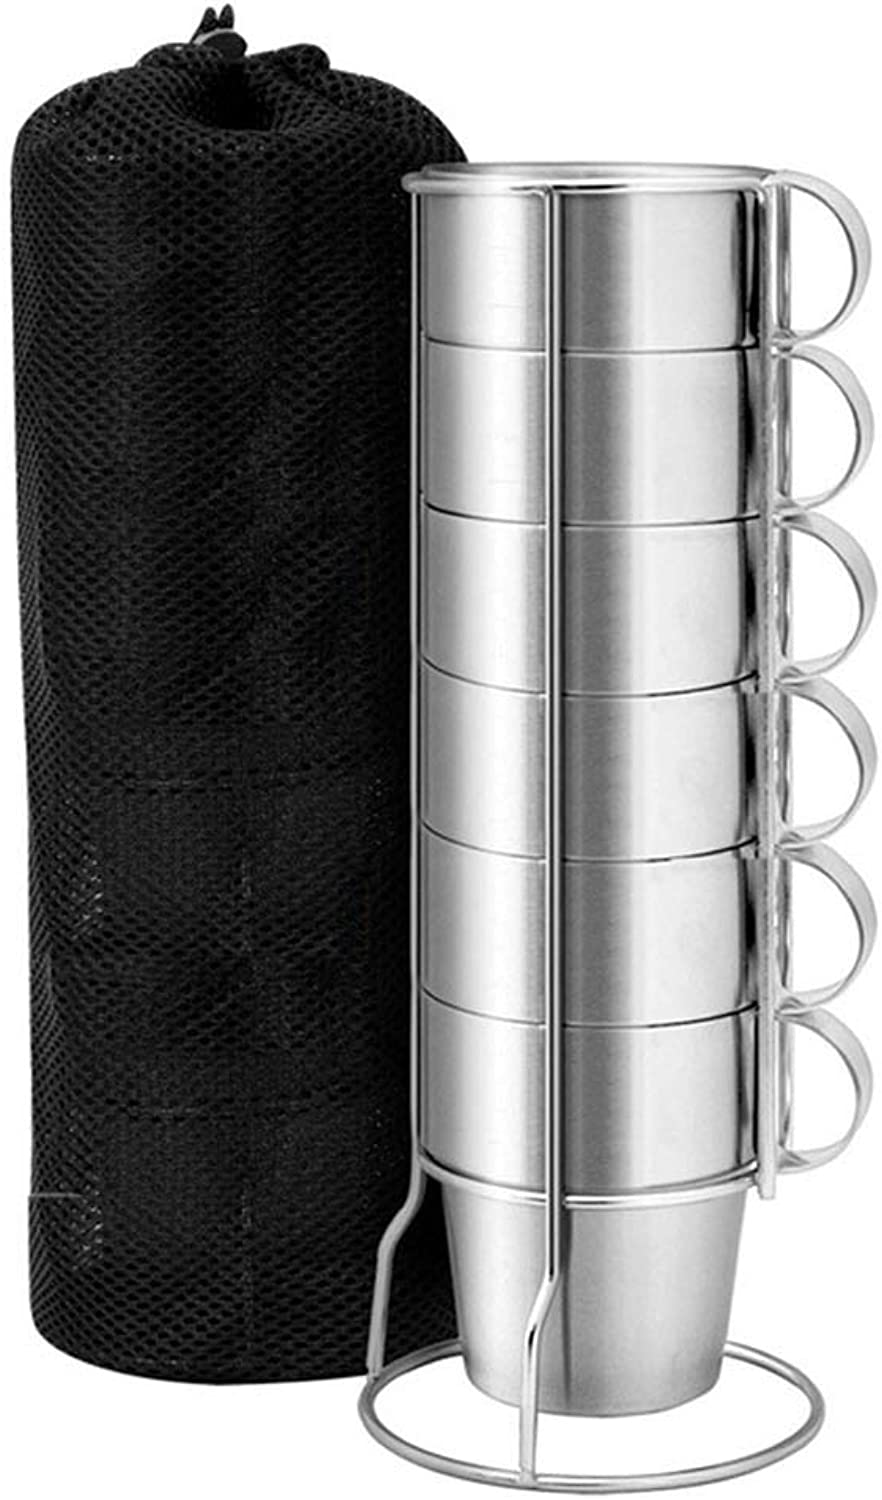 6 Pieces Double Layer Stainless Steel Water Drink Mugs AntiHot Tea Coffee Cups Set